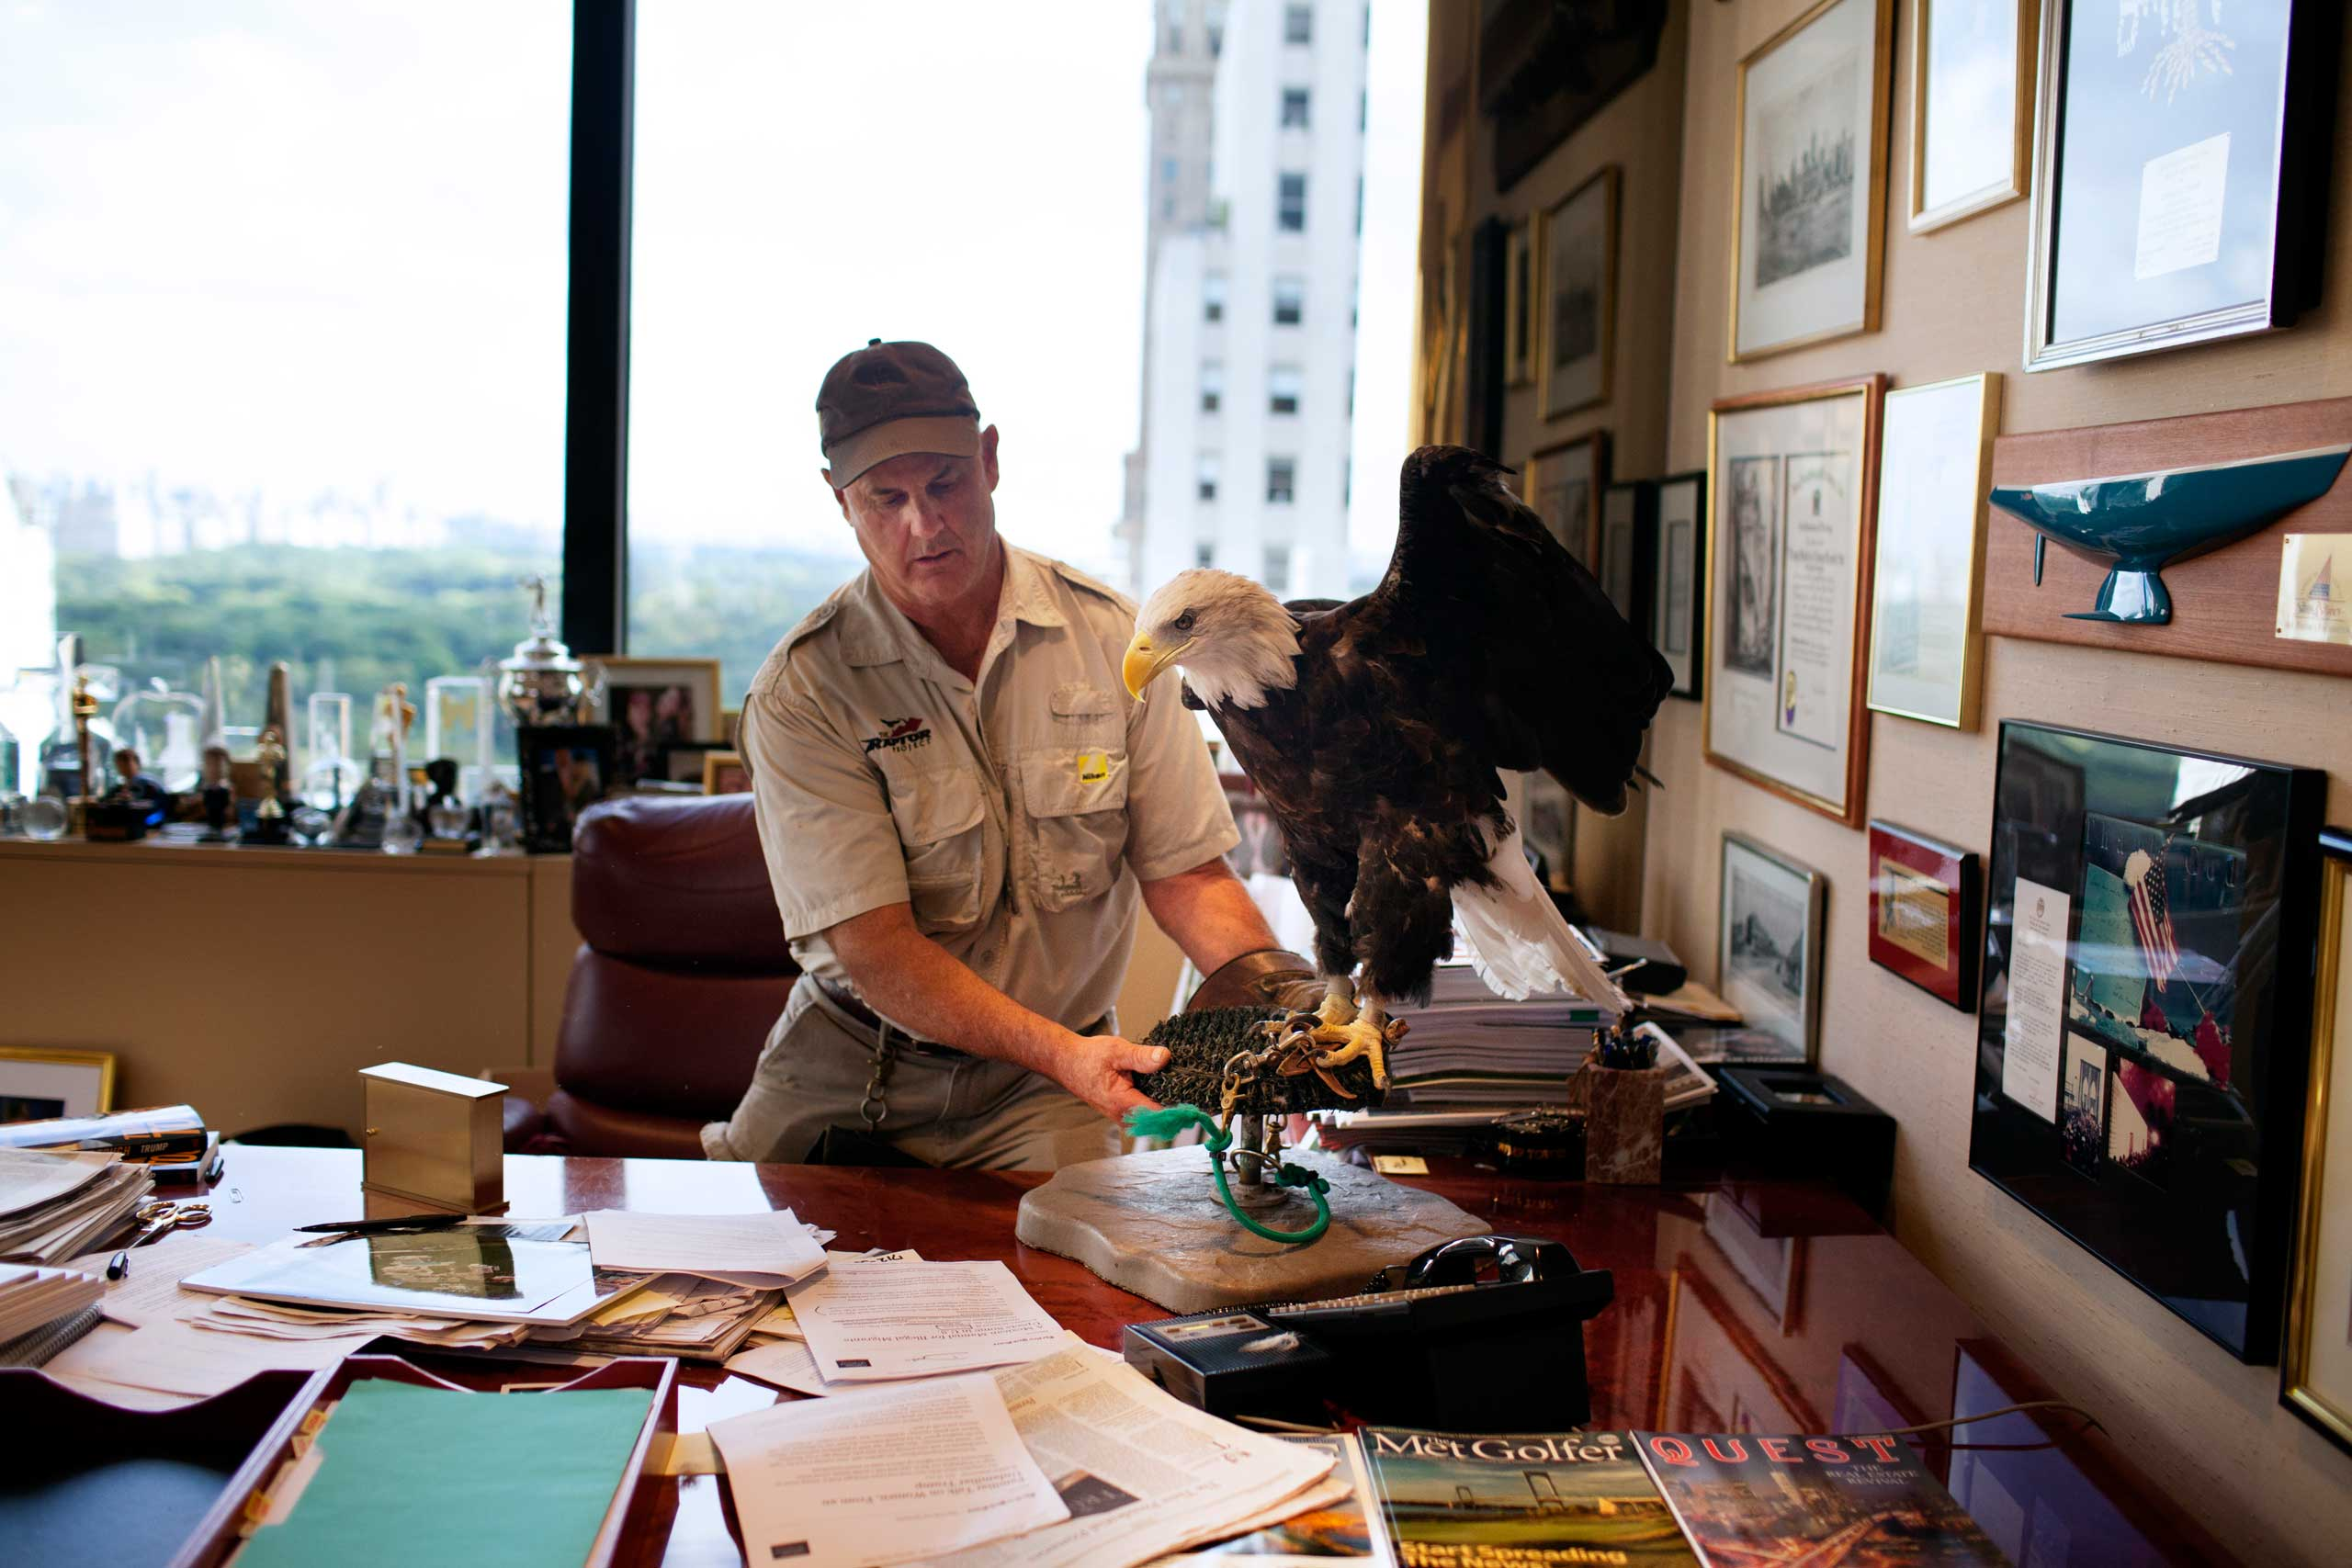 Trainer Jonathan Wood positions Uncle Sam, an American bald eagle, on Donald Trump's desk.